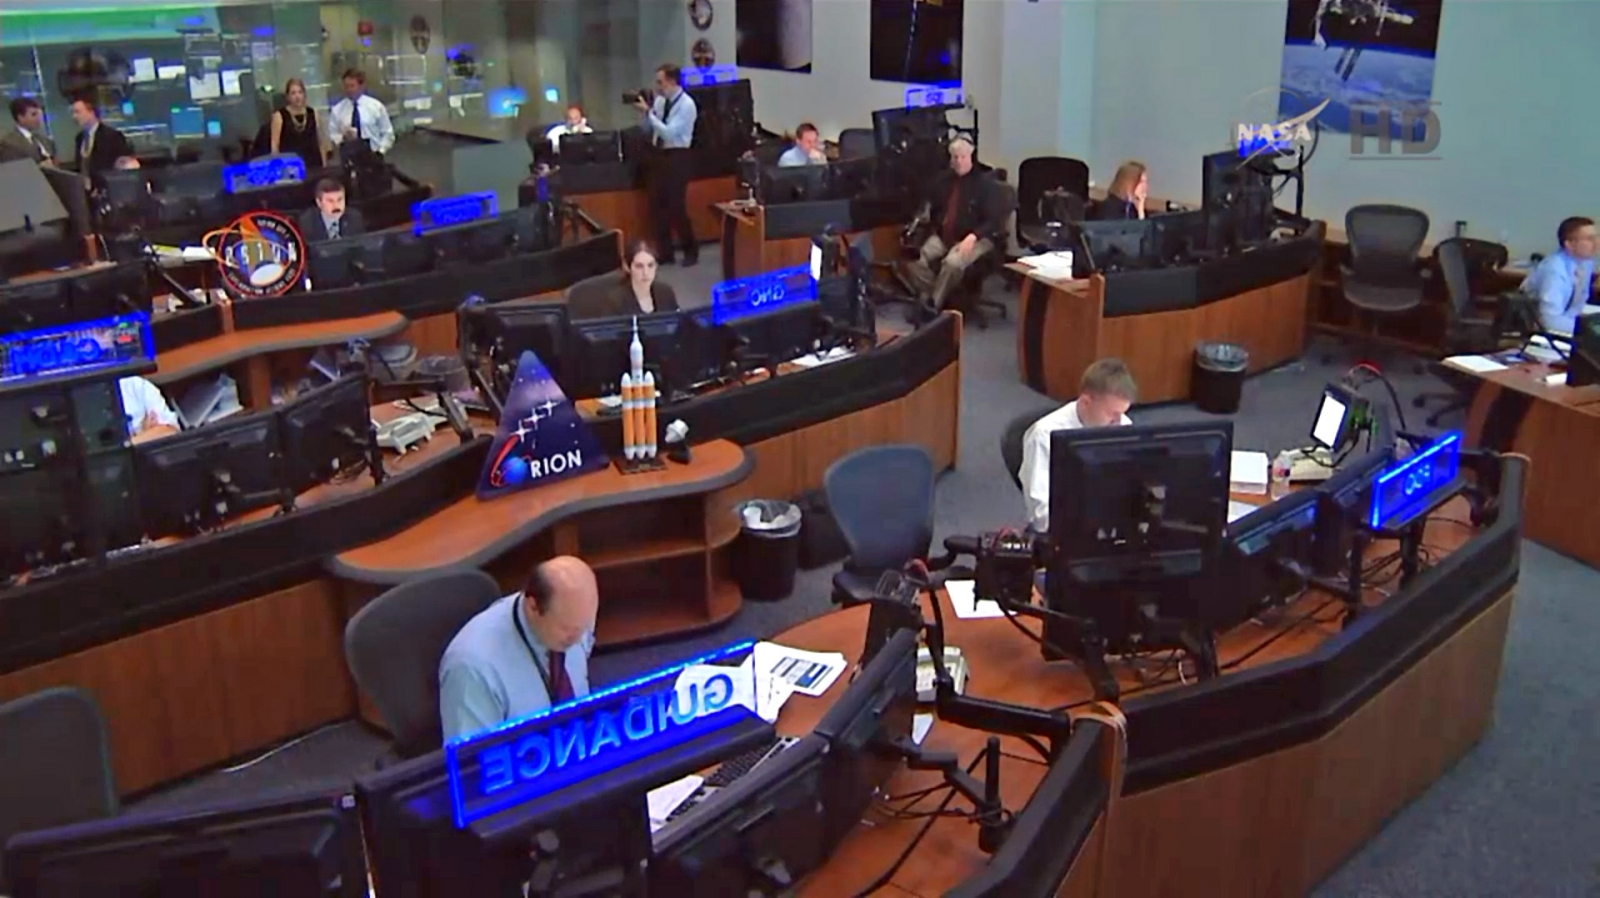 The Orion Mission Control Center at NASA's Johnson Space Center in Houston